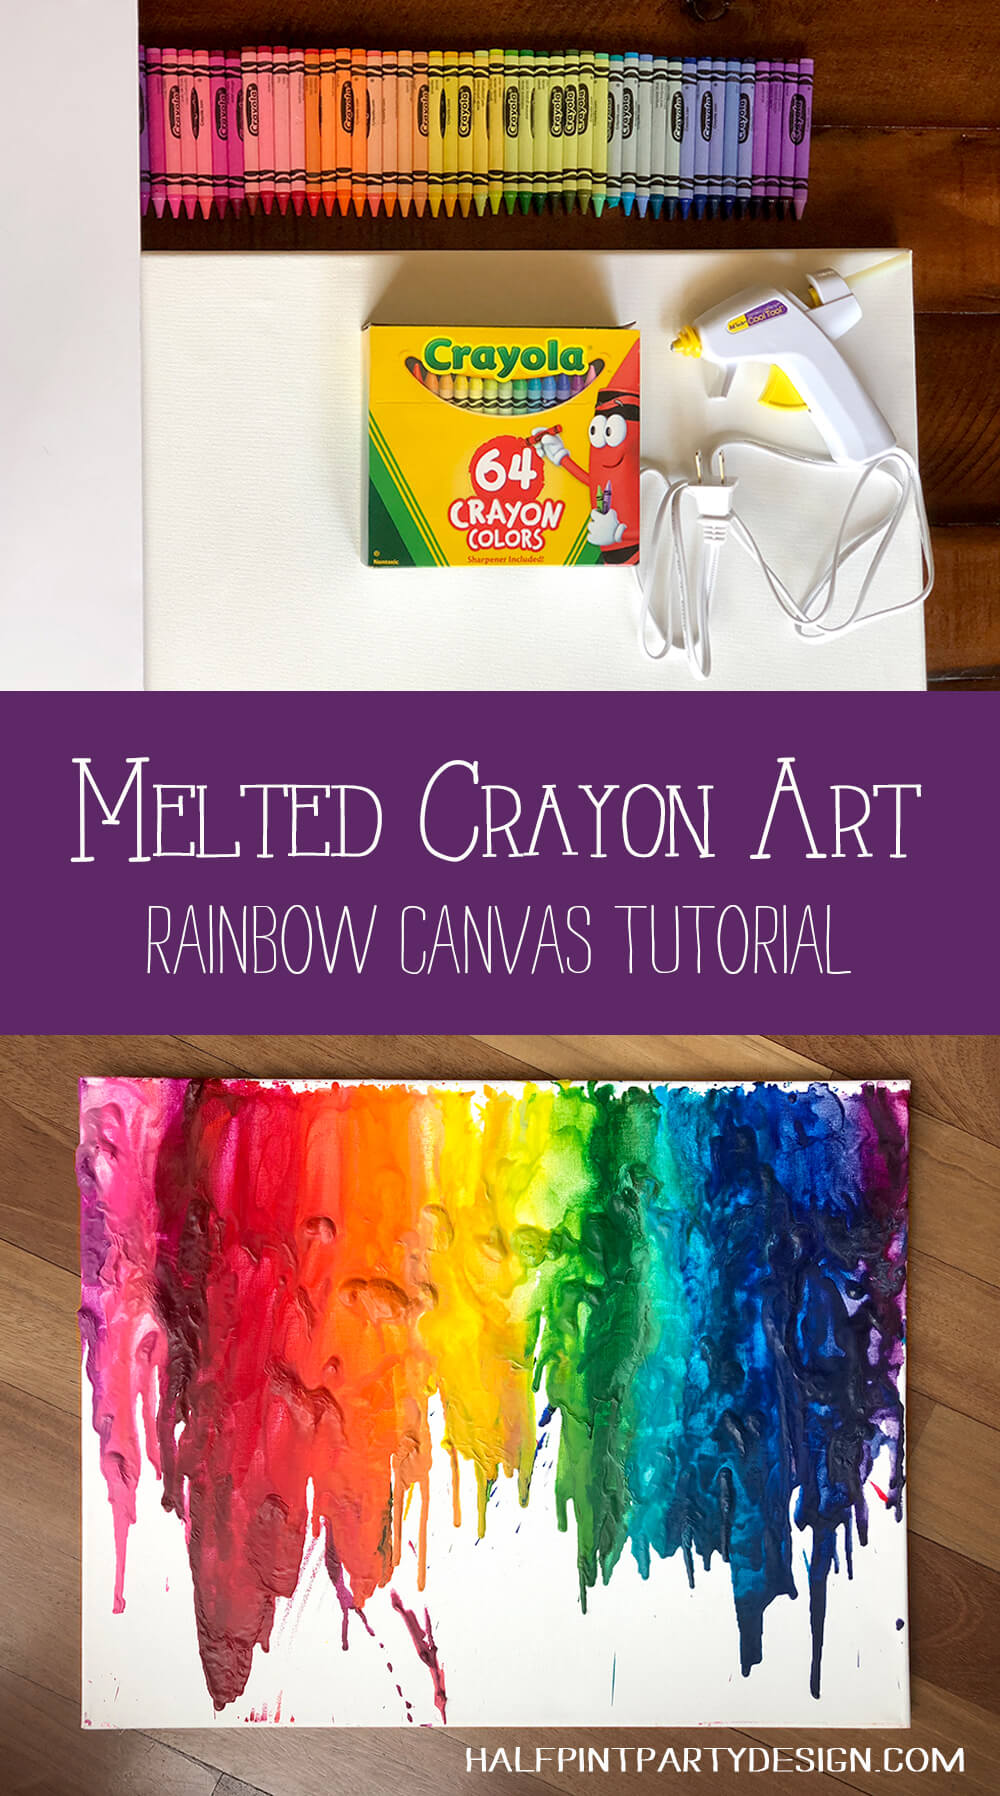 Melted crayon art rainbow canvas tutorial